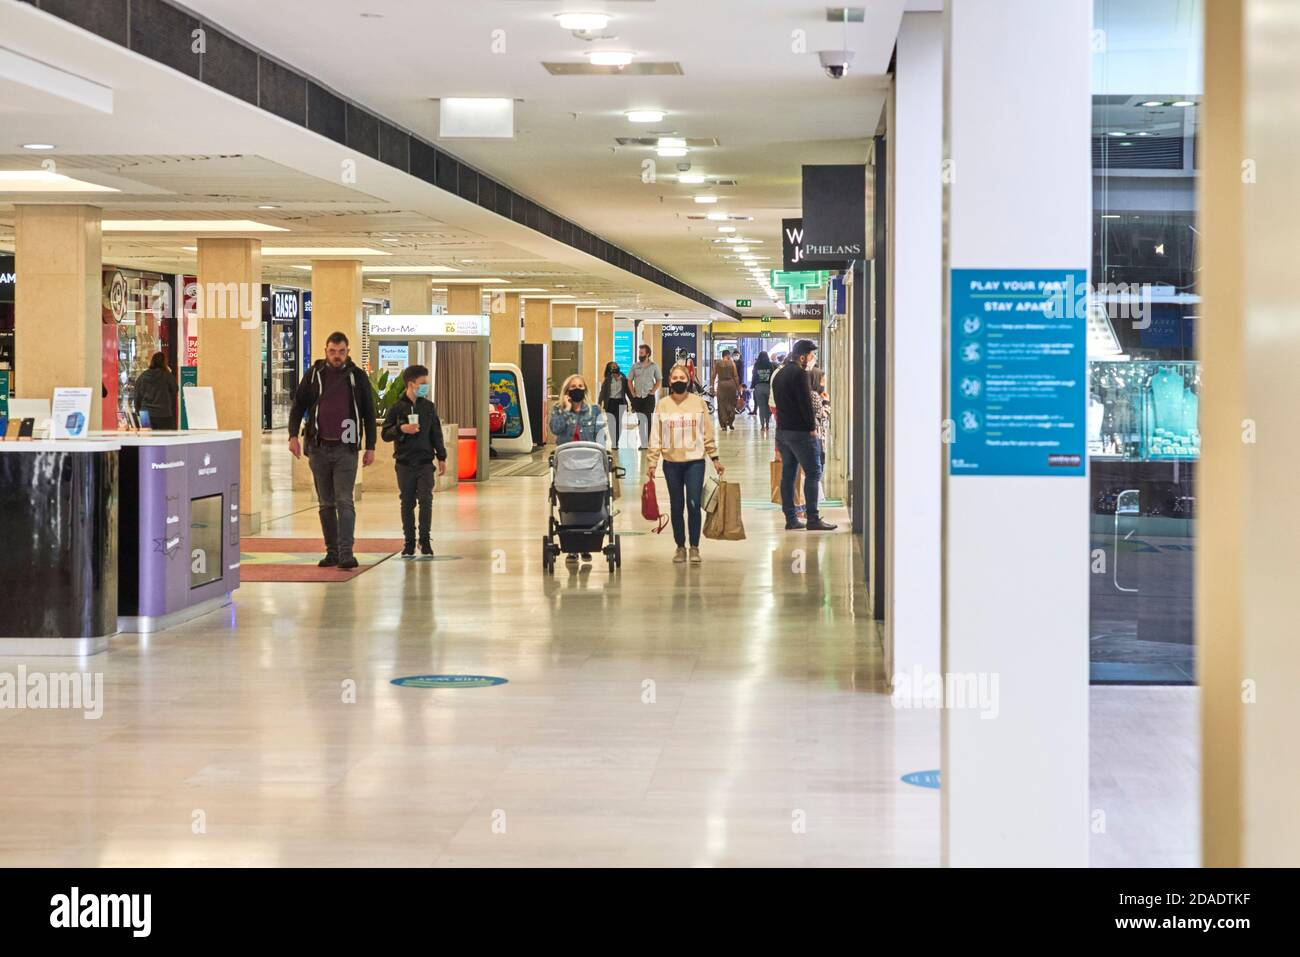 People in shopping mall at Central Milton Keynes most wearing face coverings but some are not Stock Photo